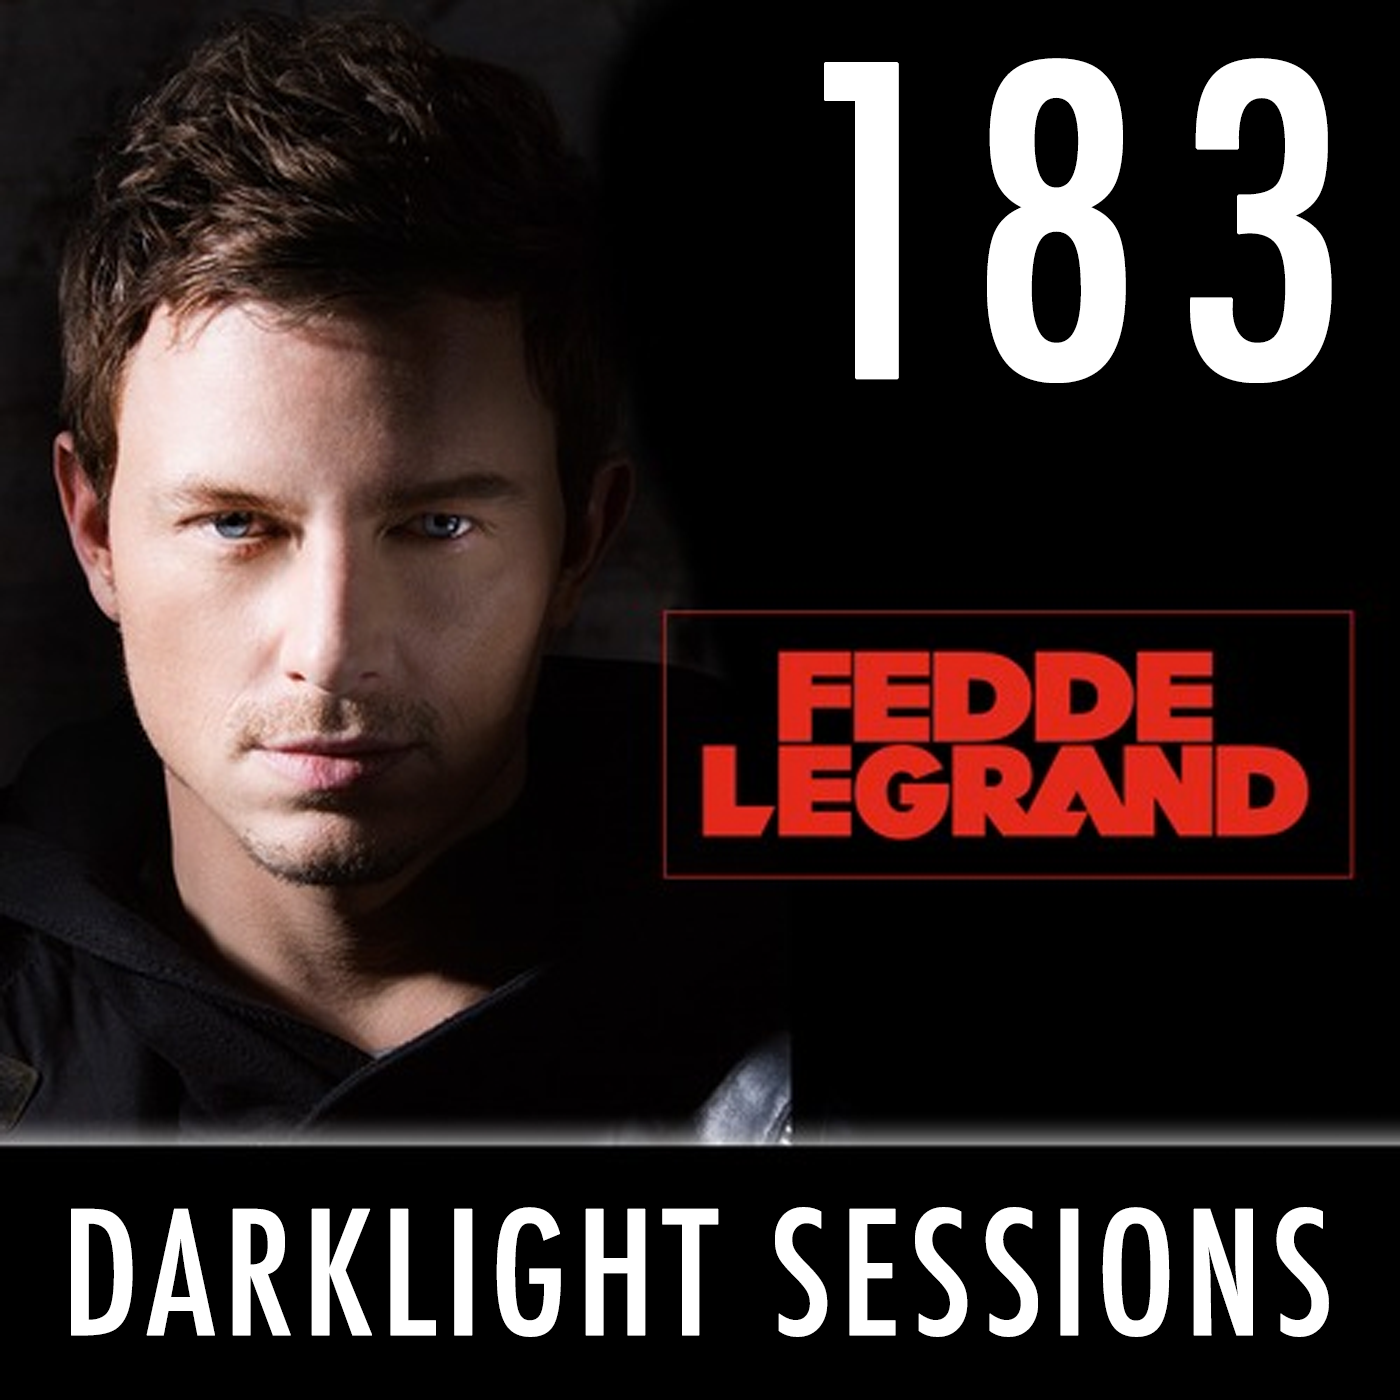 Darklight Sessions 183